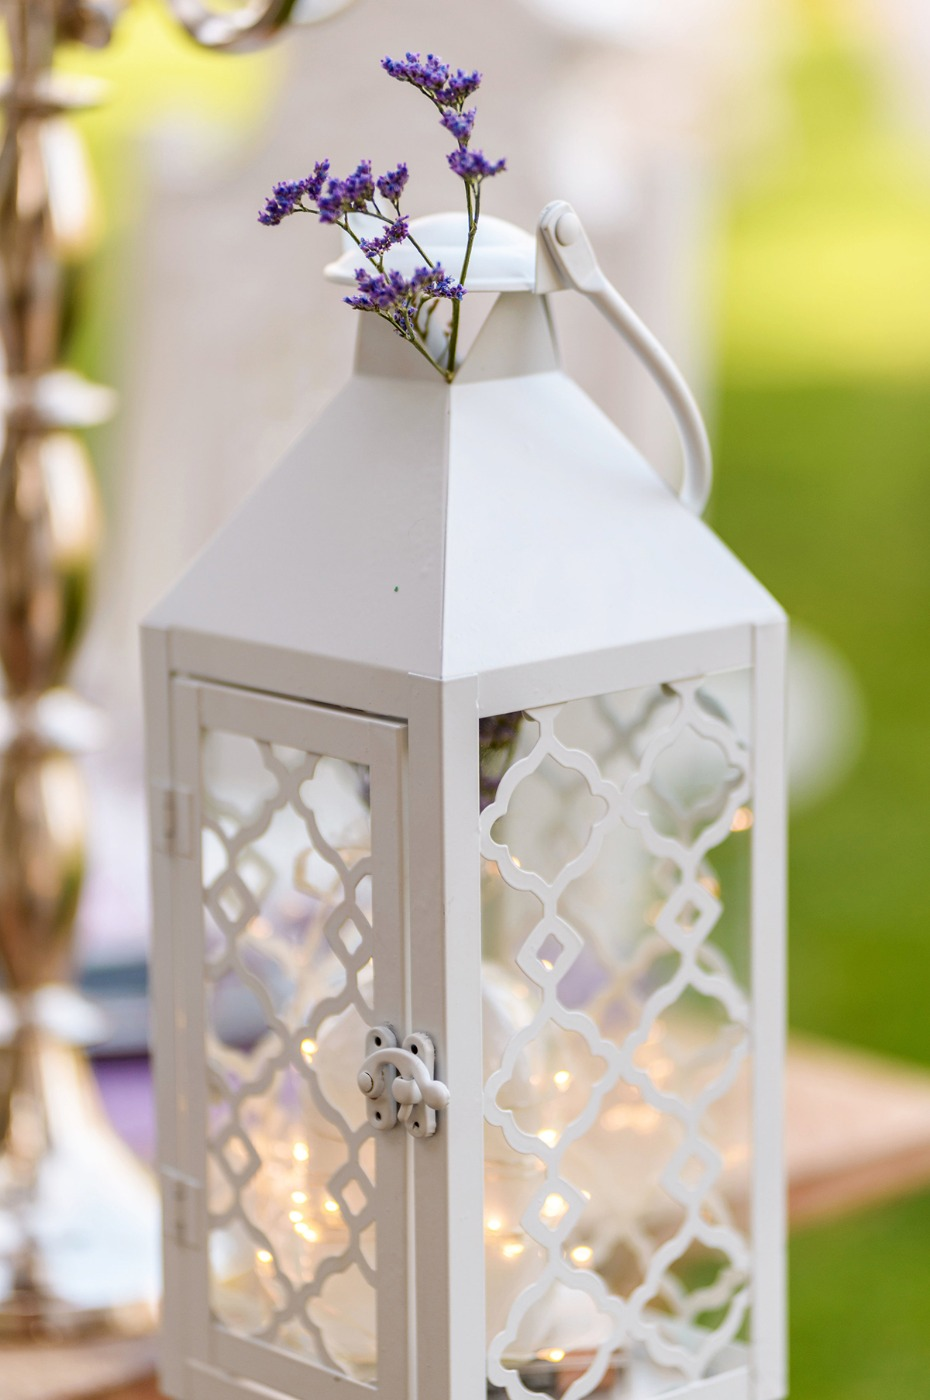 romantic white lantern with a sprig of lavender